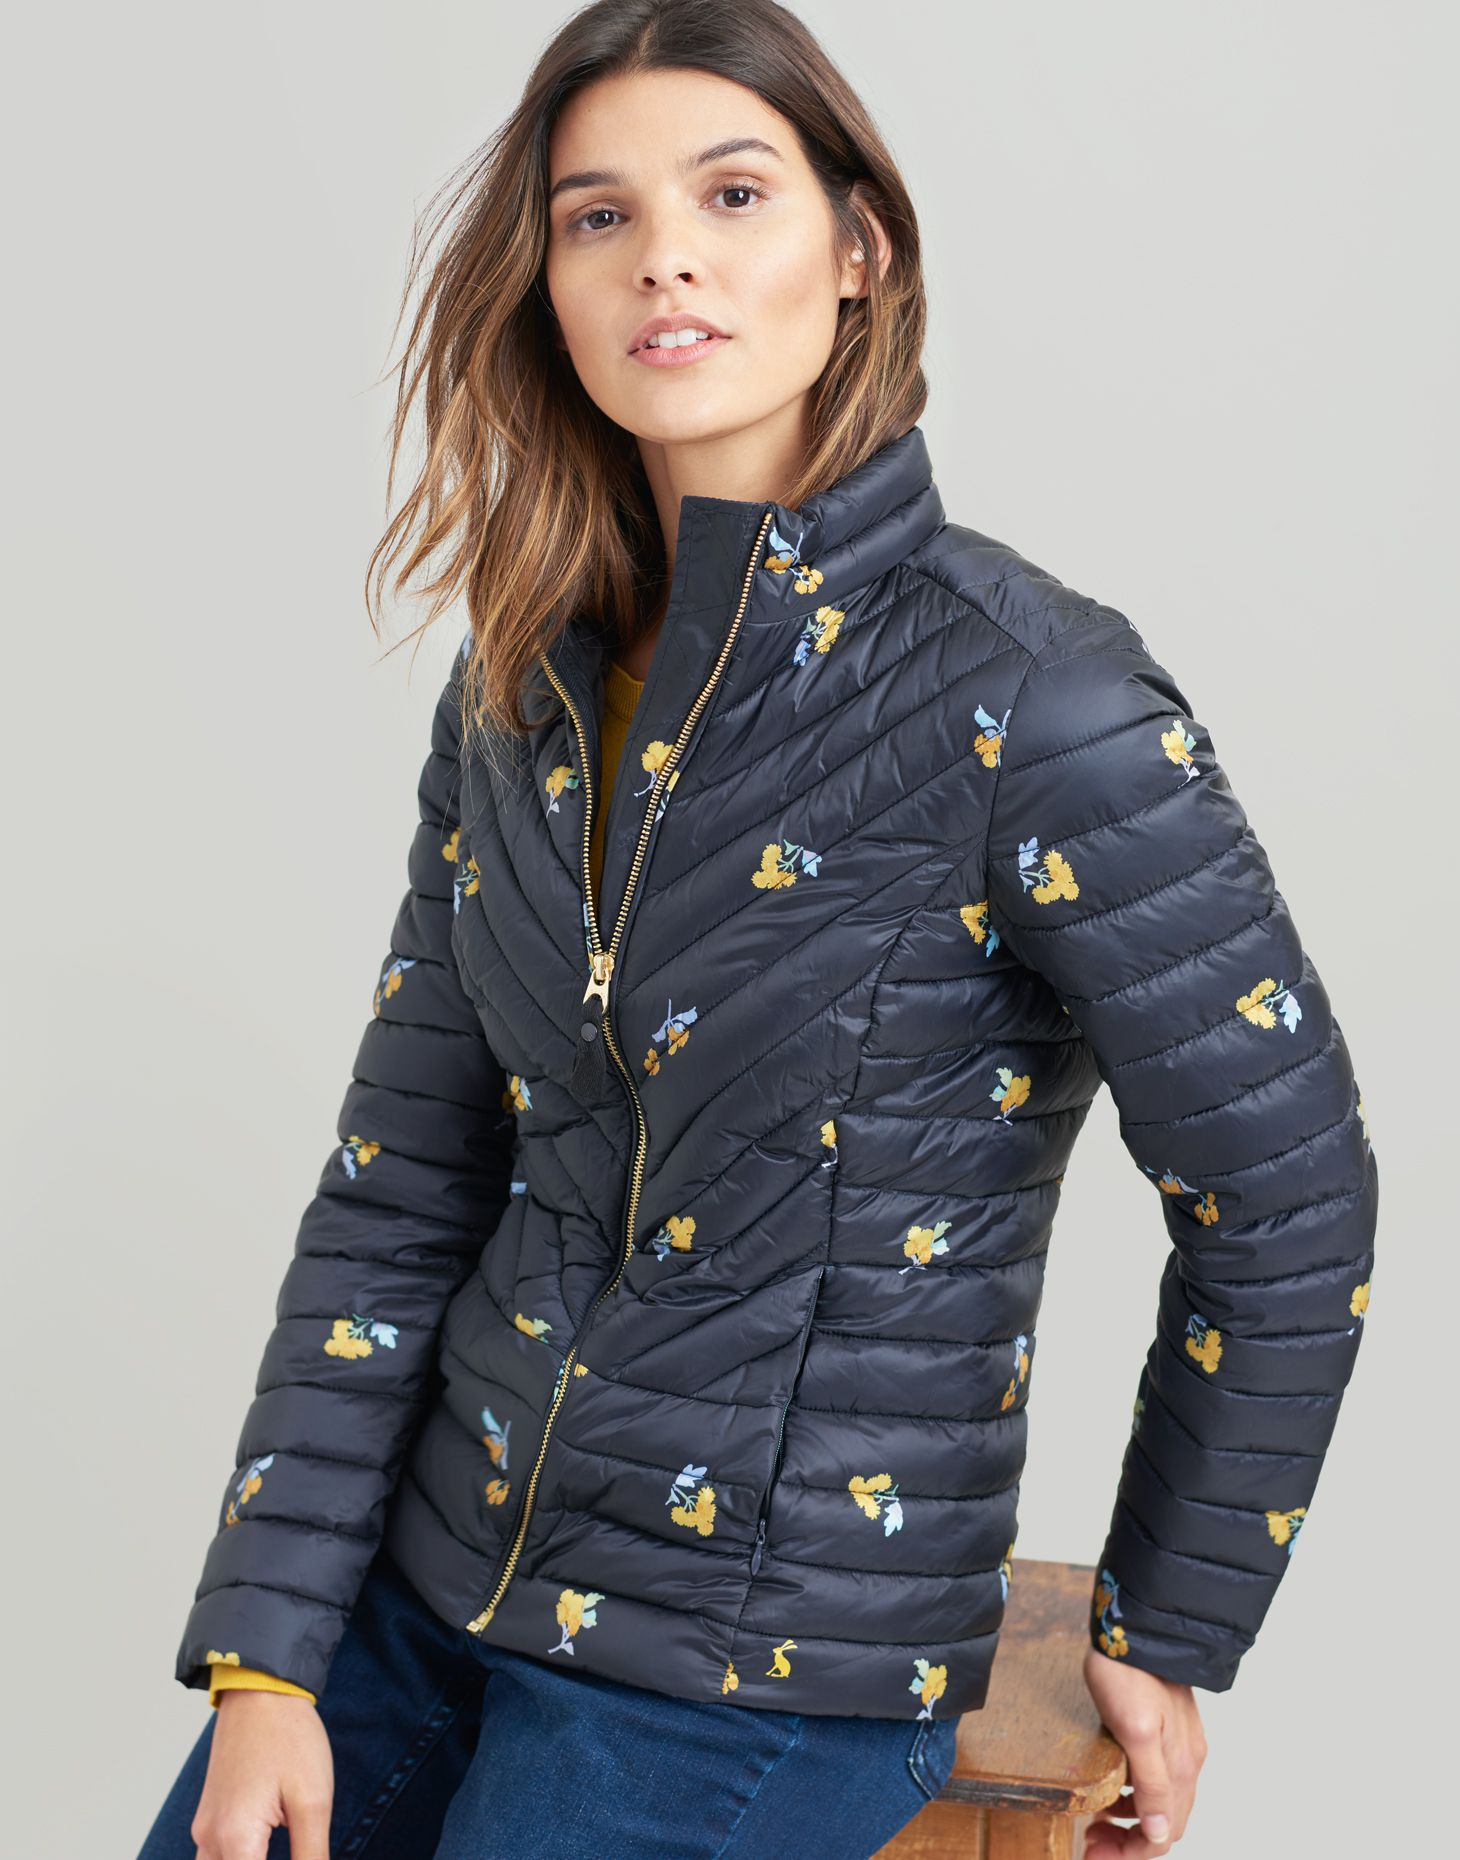 283c4d5e9 Elodie Print Chevron Quilted Jacket